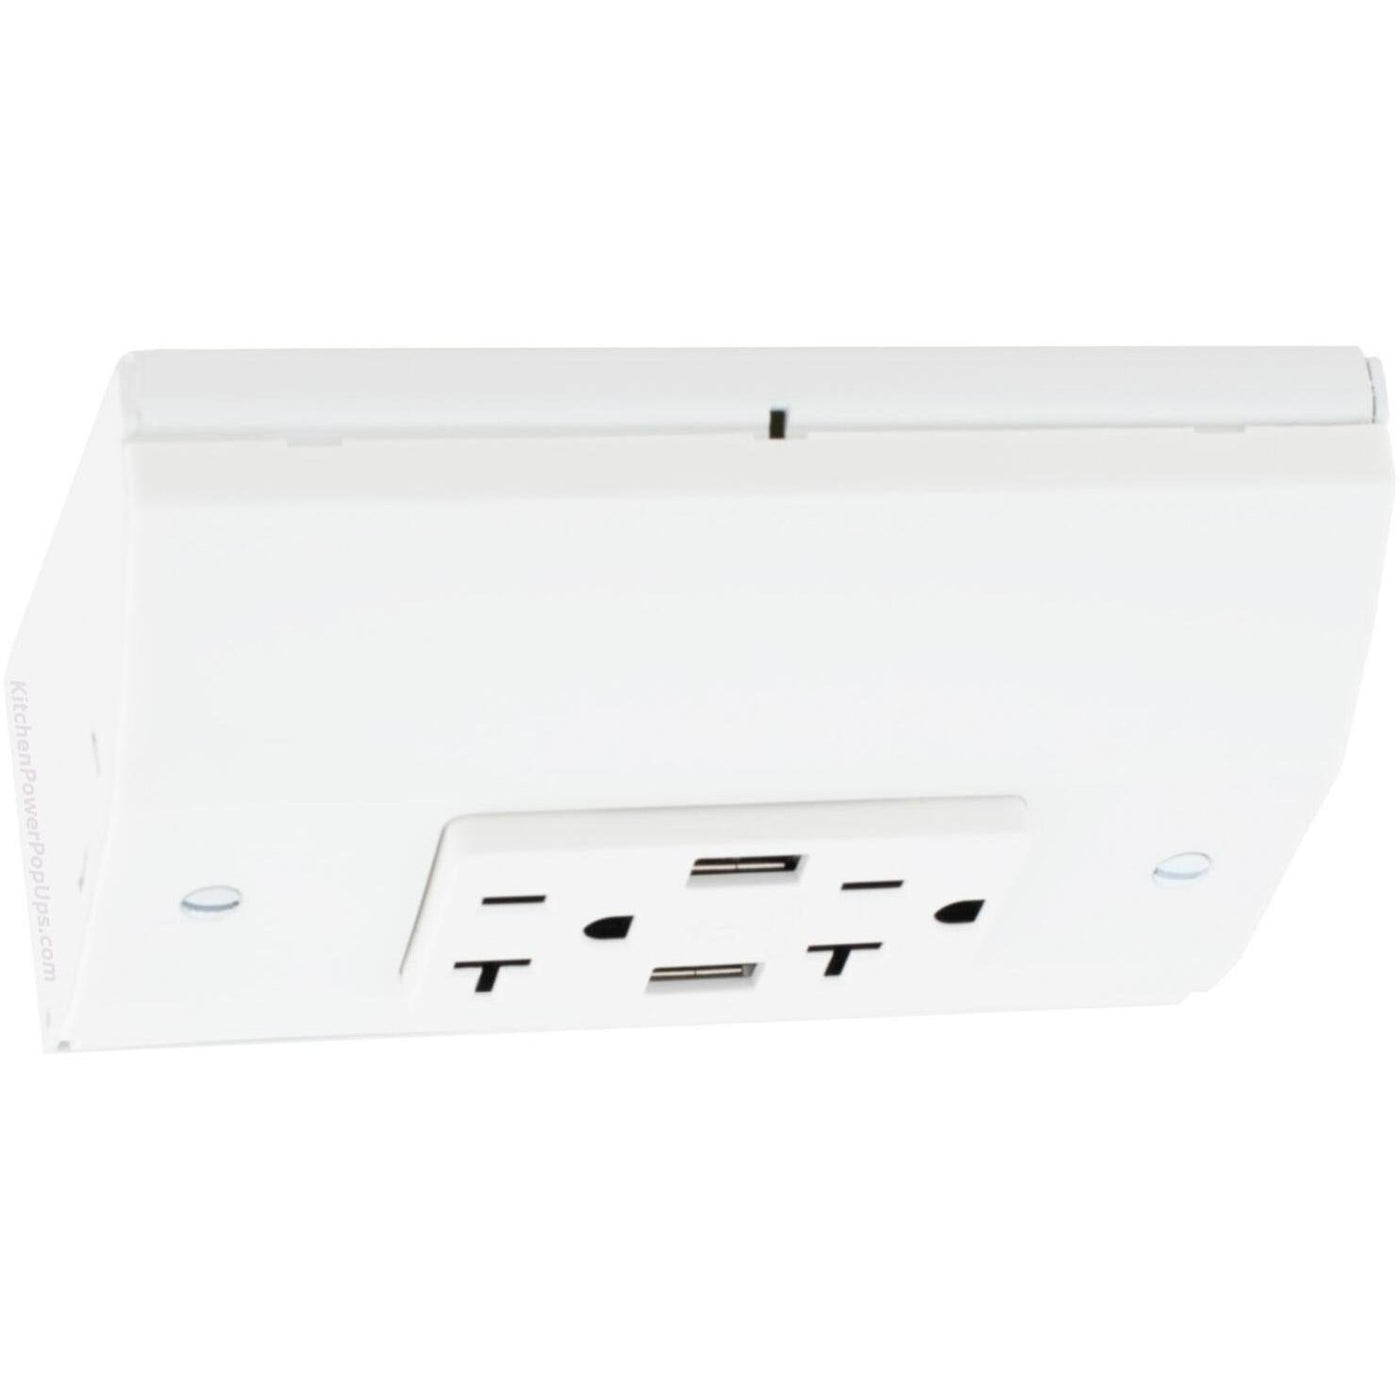 Hubbell RU270W20AUSB Under Cabinet Power 20A USB Box White ...